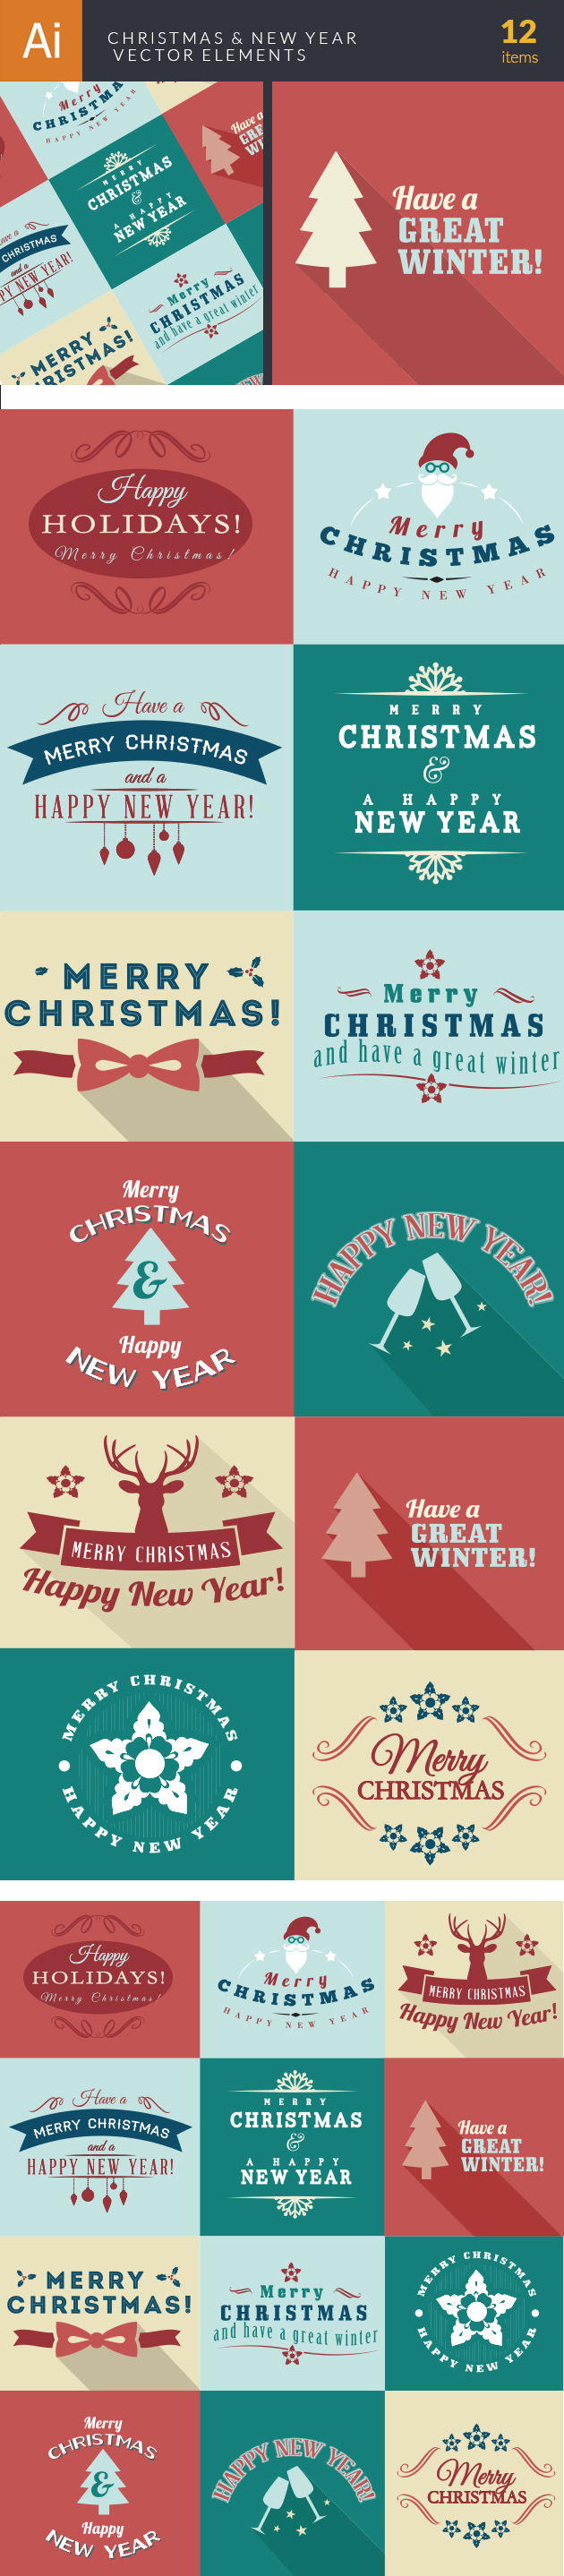 Christmas And New Year Elements Vector designtnt christmas and new year elements vector large